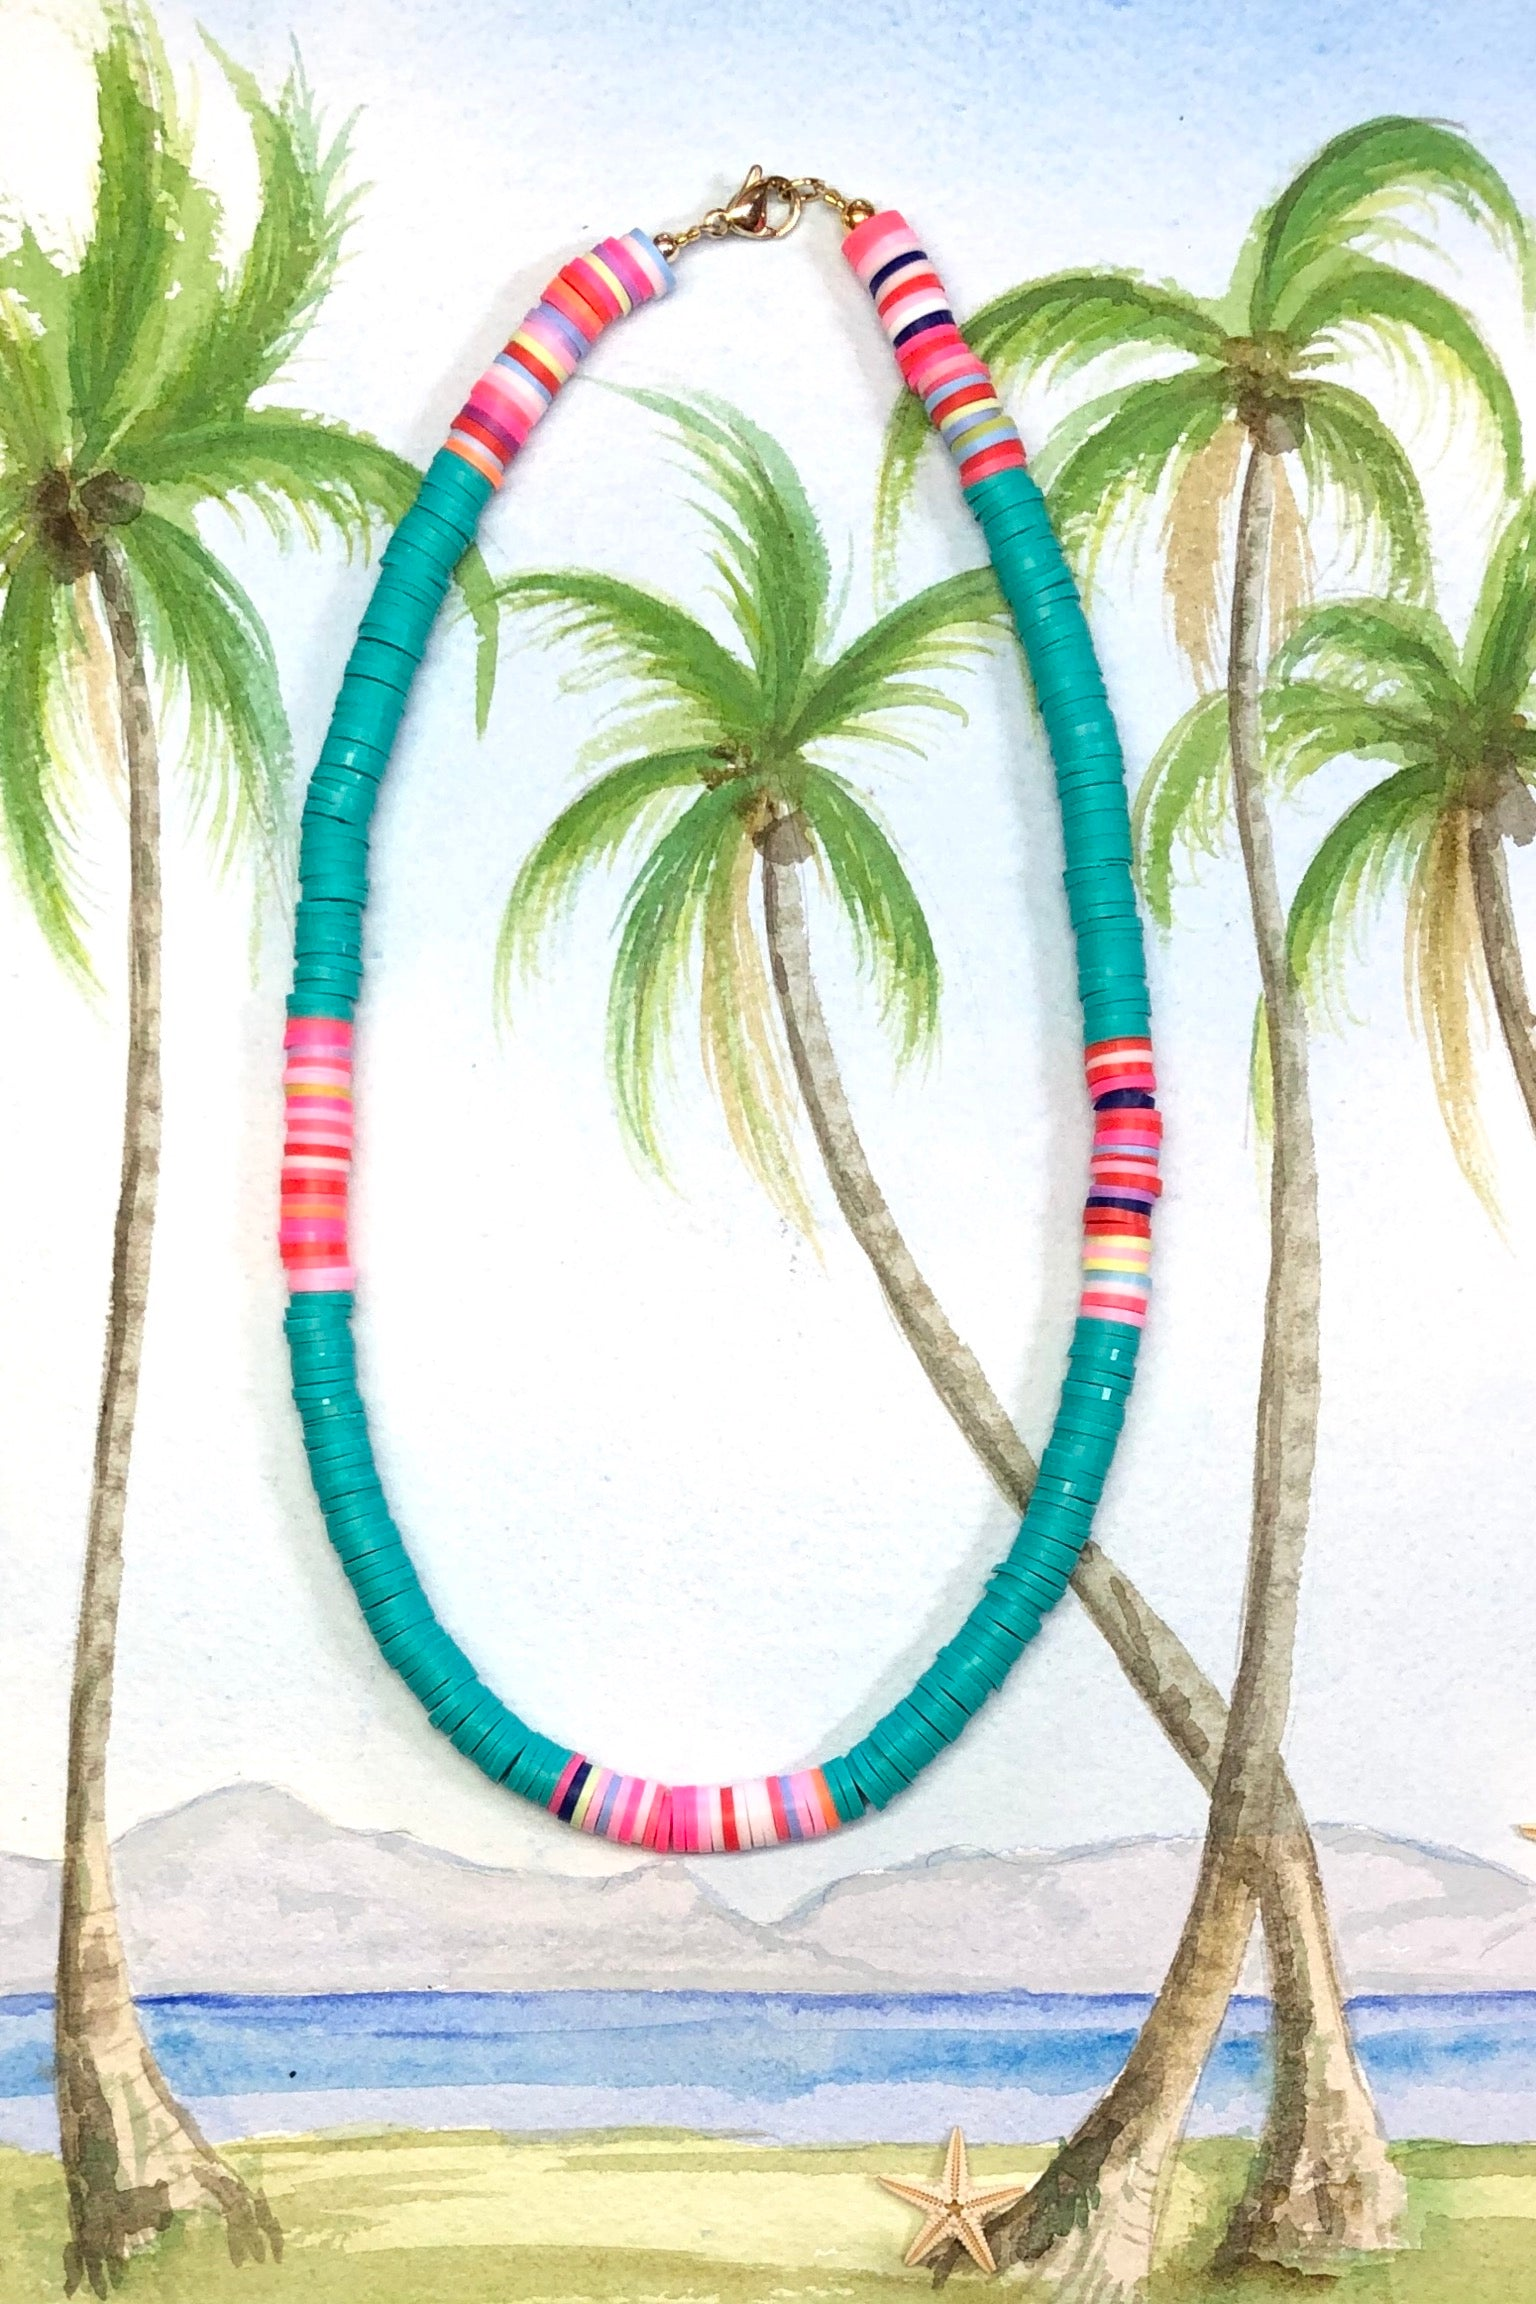 summer island magic in our Necklace Summer Heishi bright pink, with bright waterproof beads in the brightest beach colours, and you can swim in this!